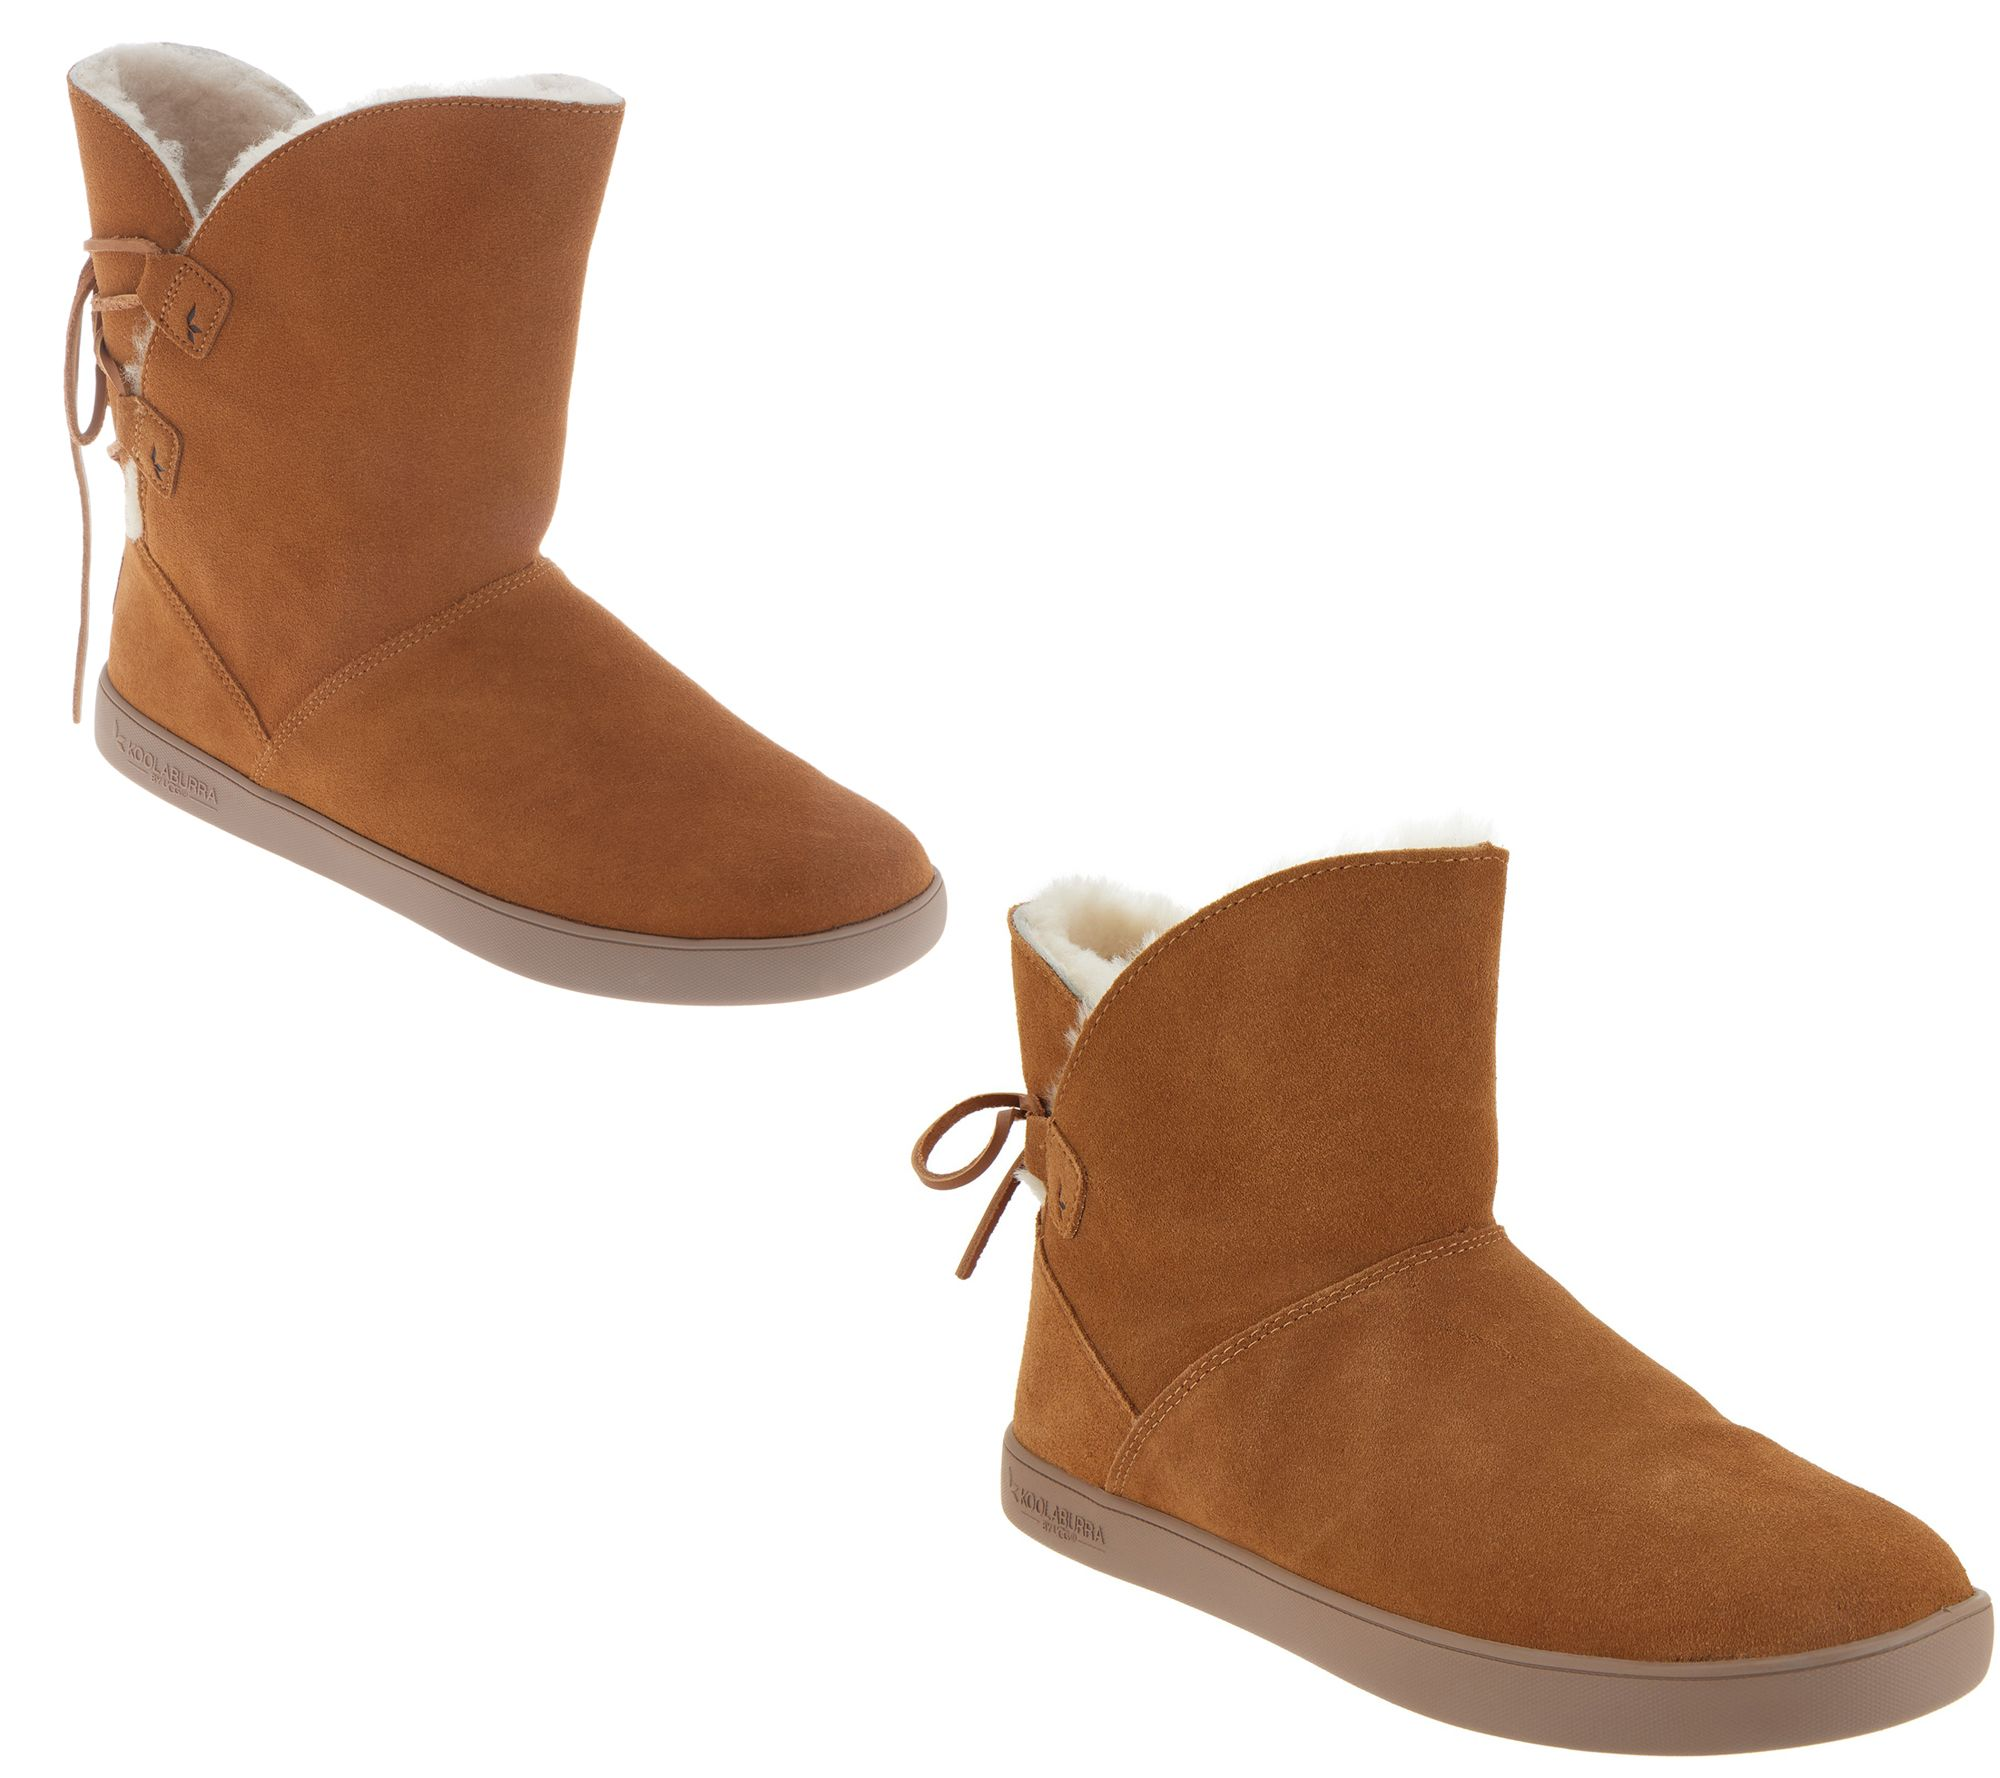 ead546f9f0e Koolaburra by UGG Choice of Short or Mini Tie Back Boots — QVC.com